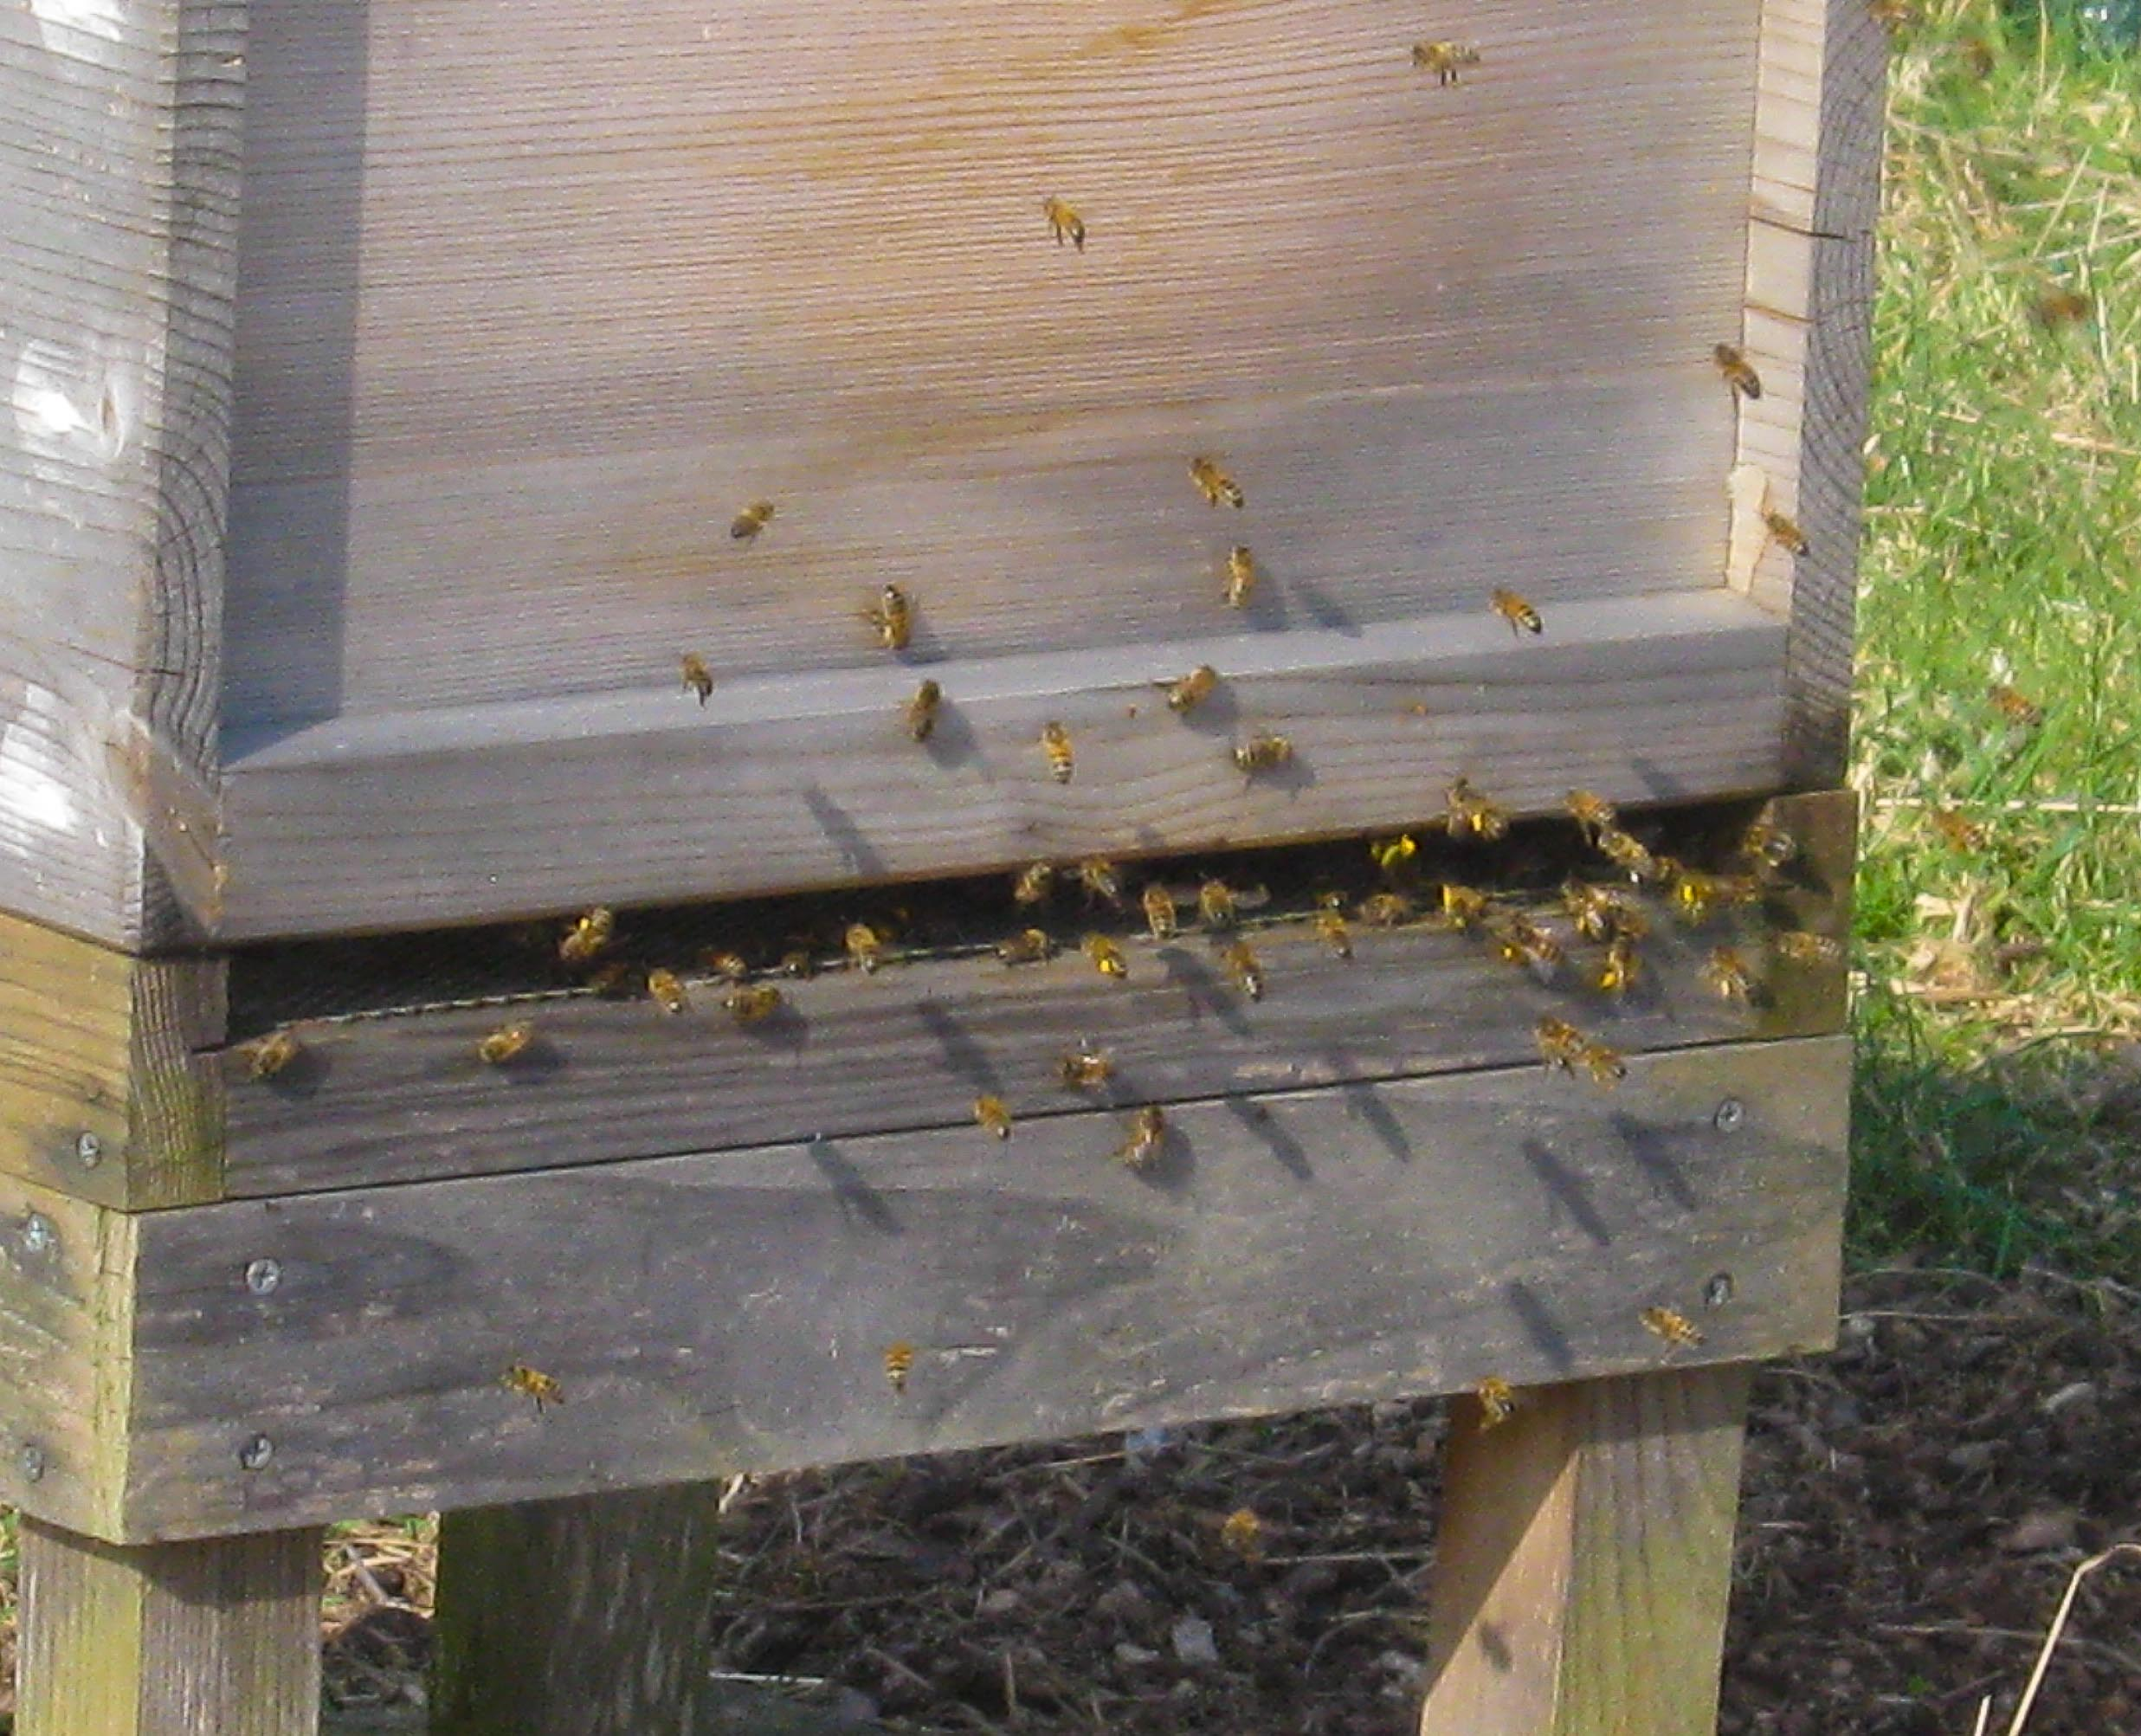 can you see how many have yellow pollen on their legs?